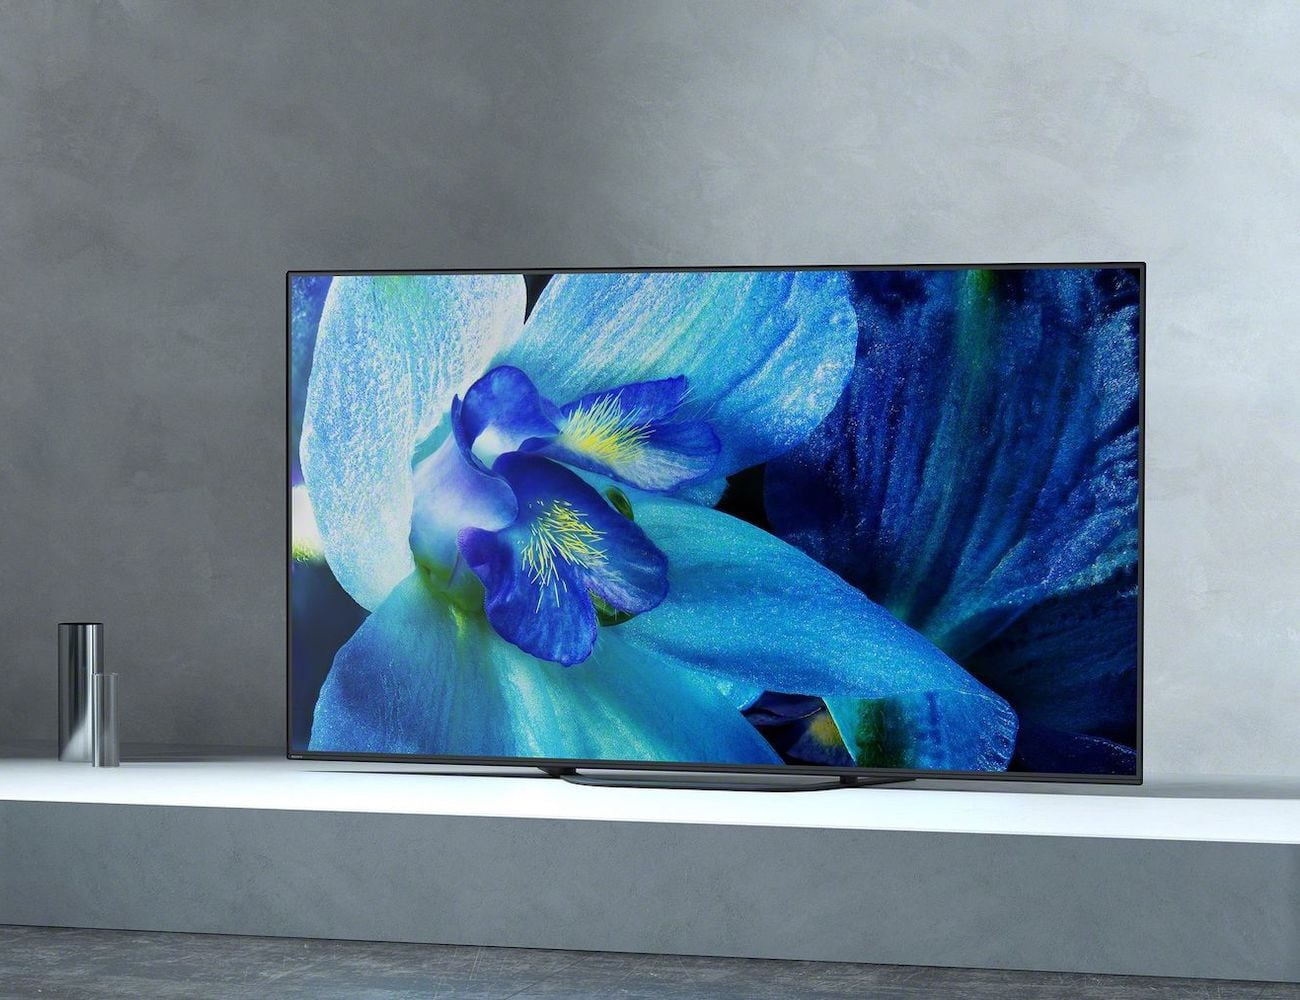 Sony MASTER Series A9G OLED 4K Ultra HD Smart TVs displays extremely clear picture